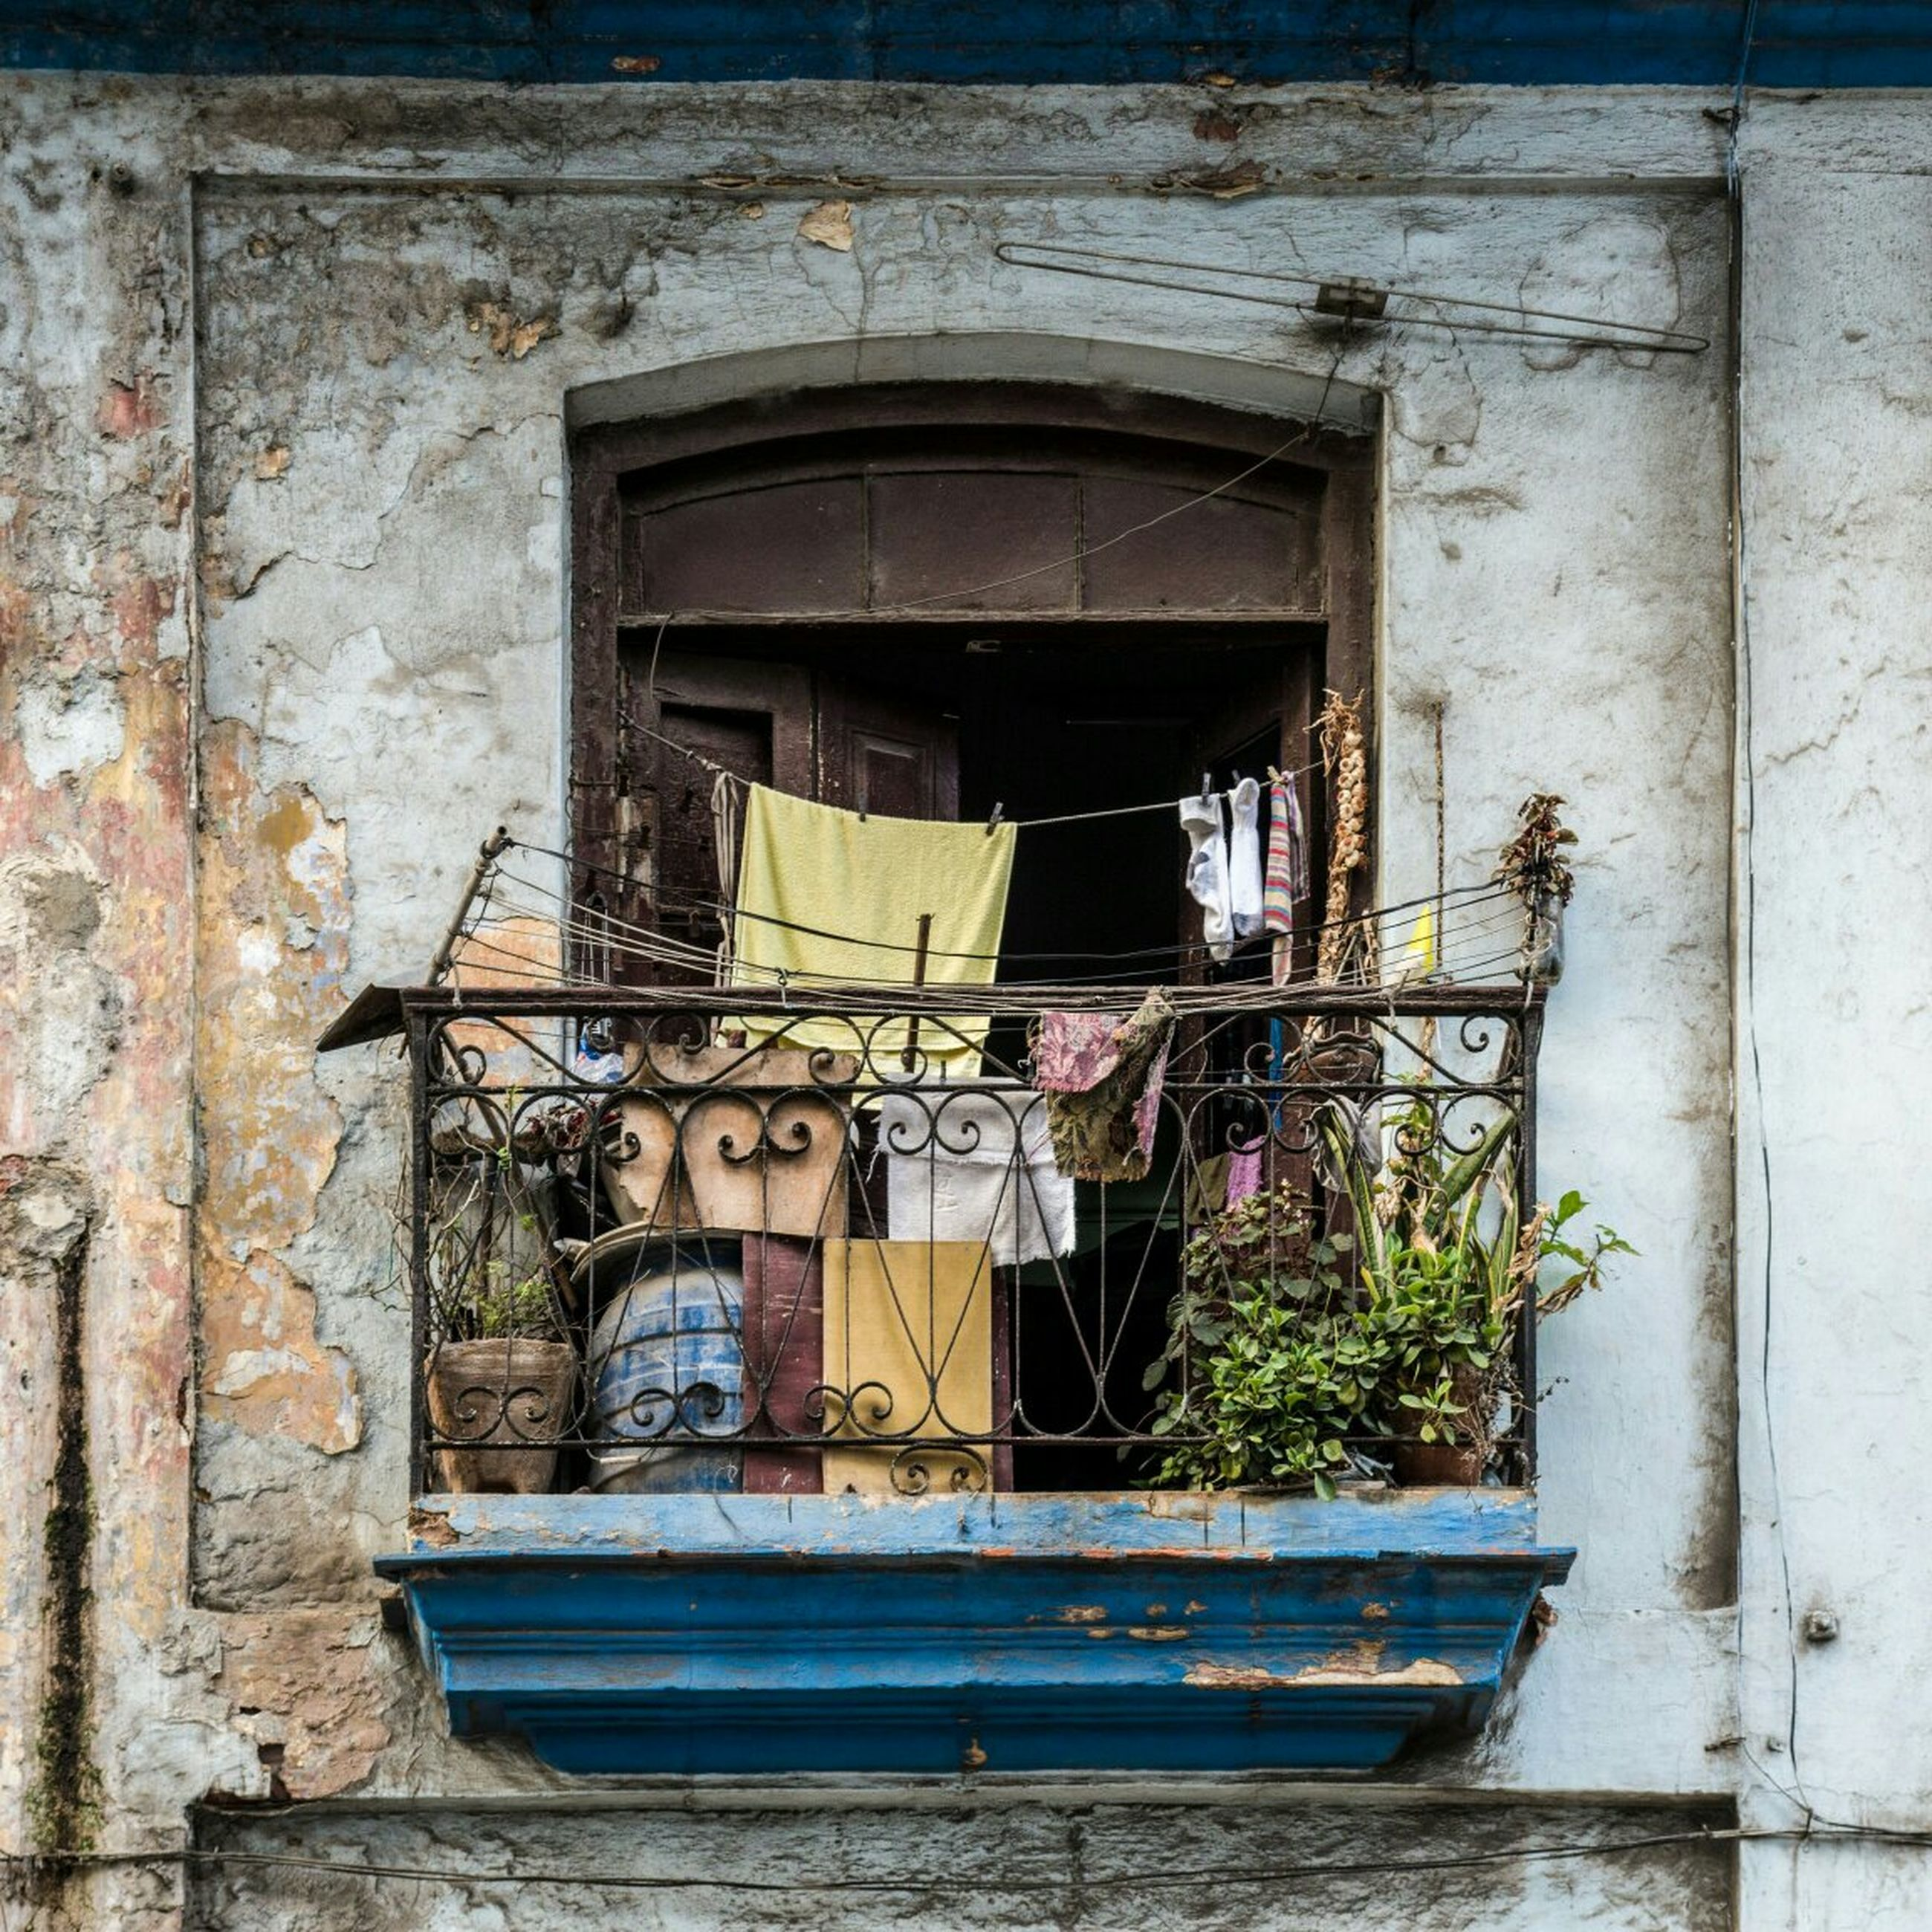 architecture, building exterior, built structure, old, window, abandoned, damaged, obsolete, weathered, run-down, house, deterioration, door, residential structure, building, bad condition, residential building, day, outdoors, closed